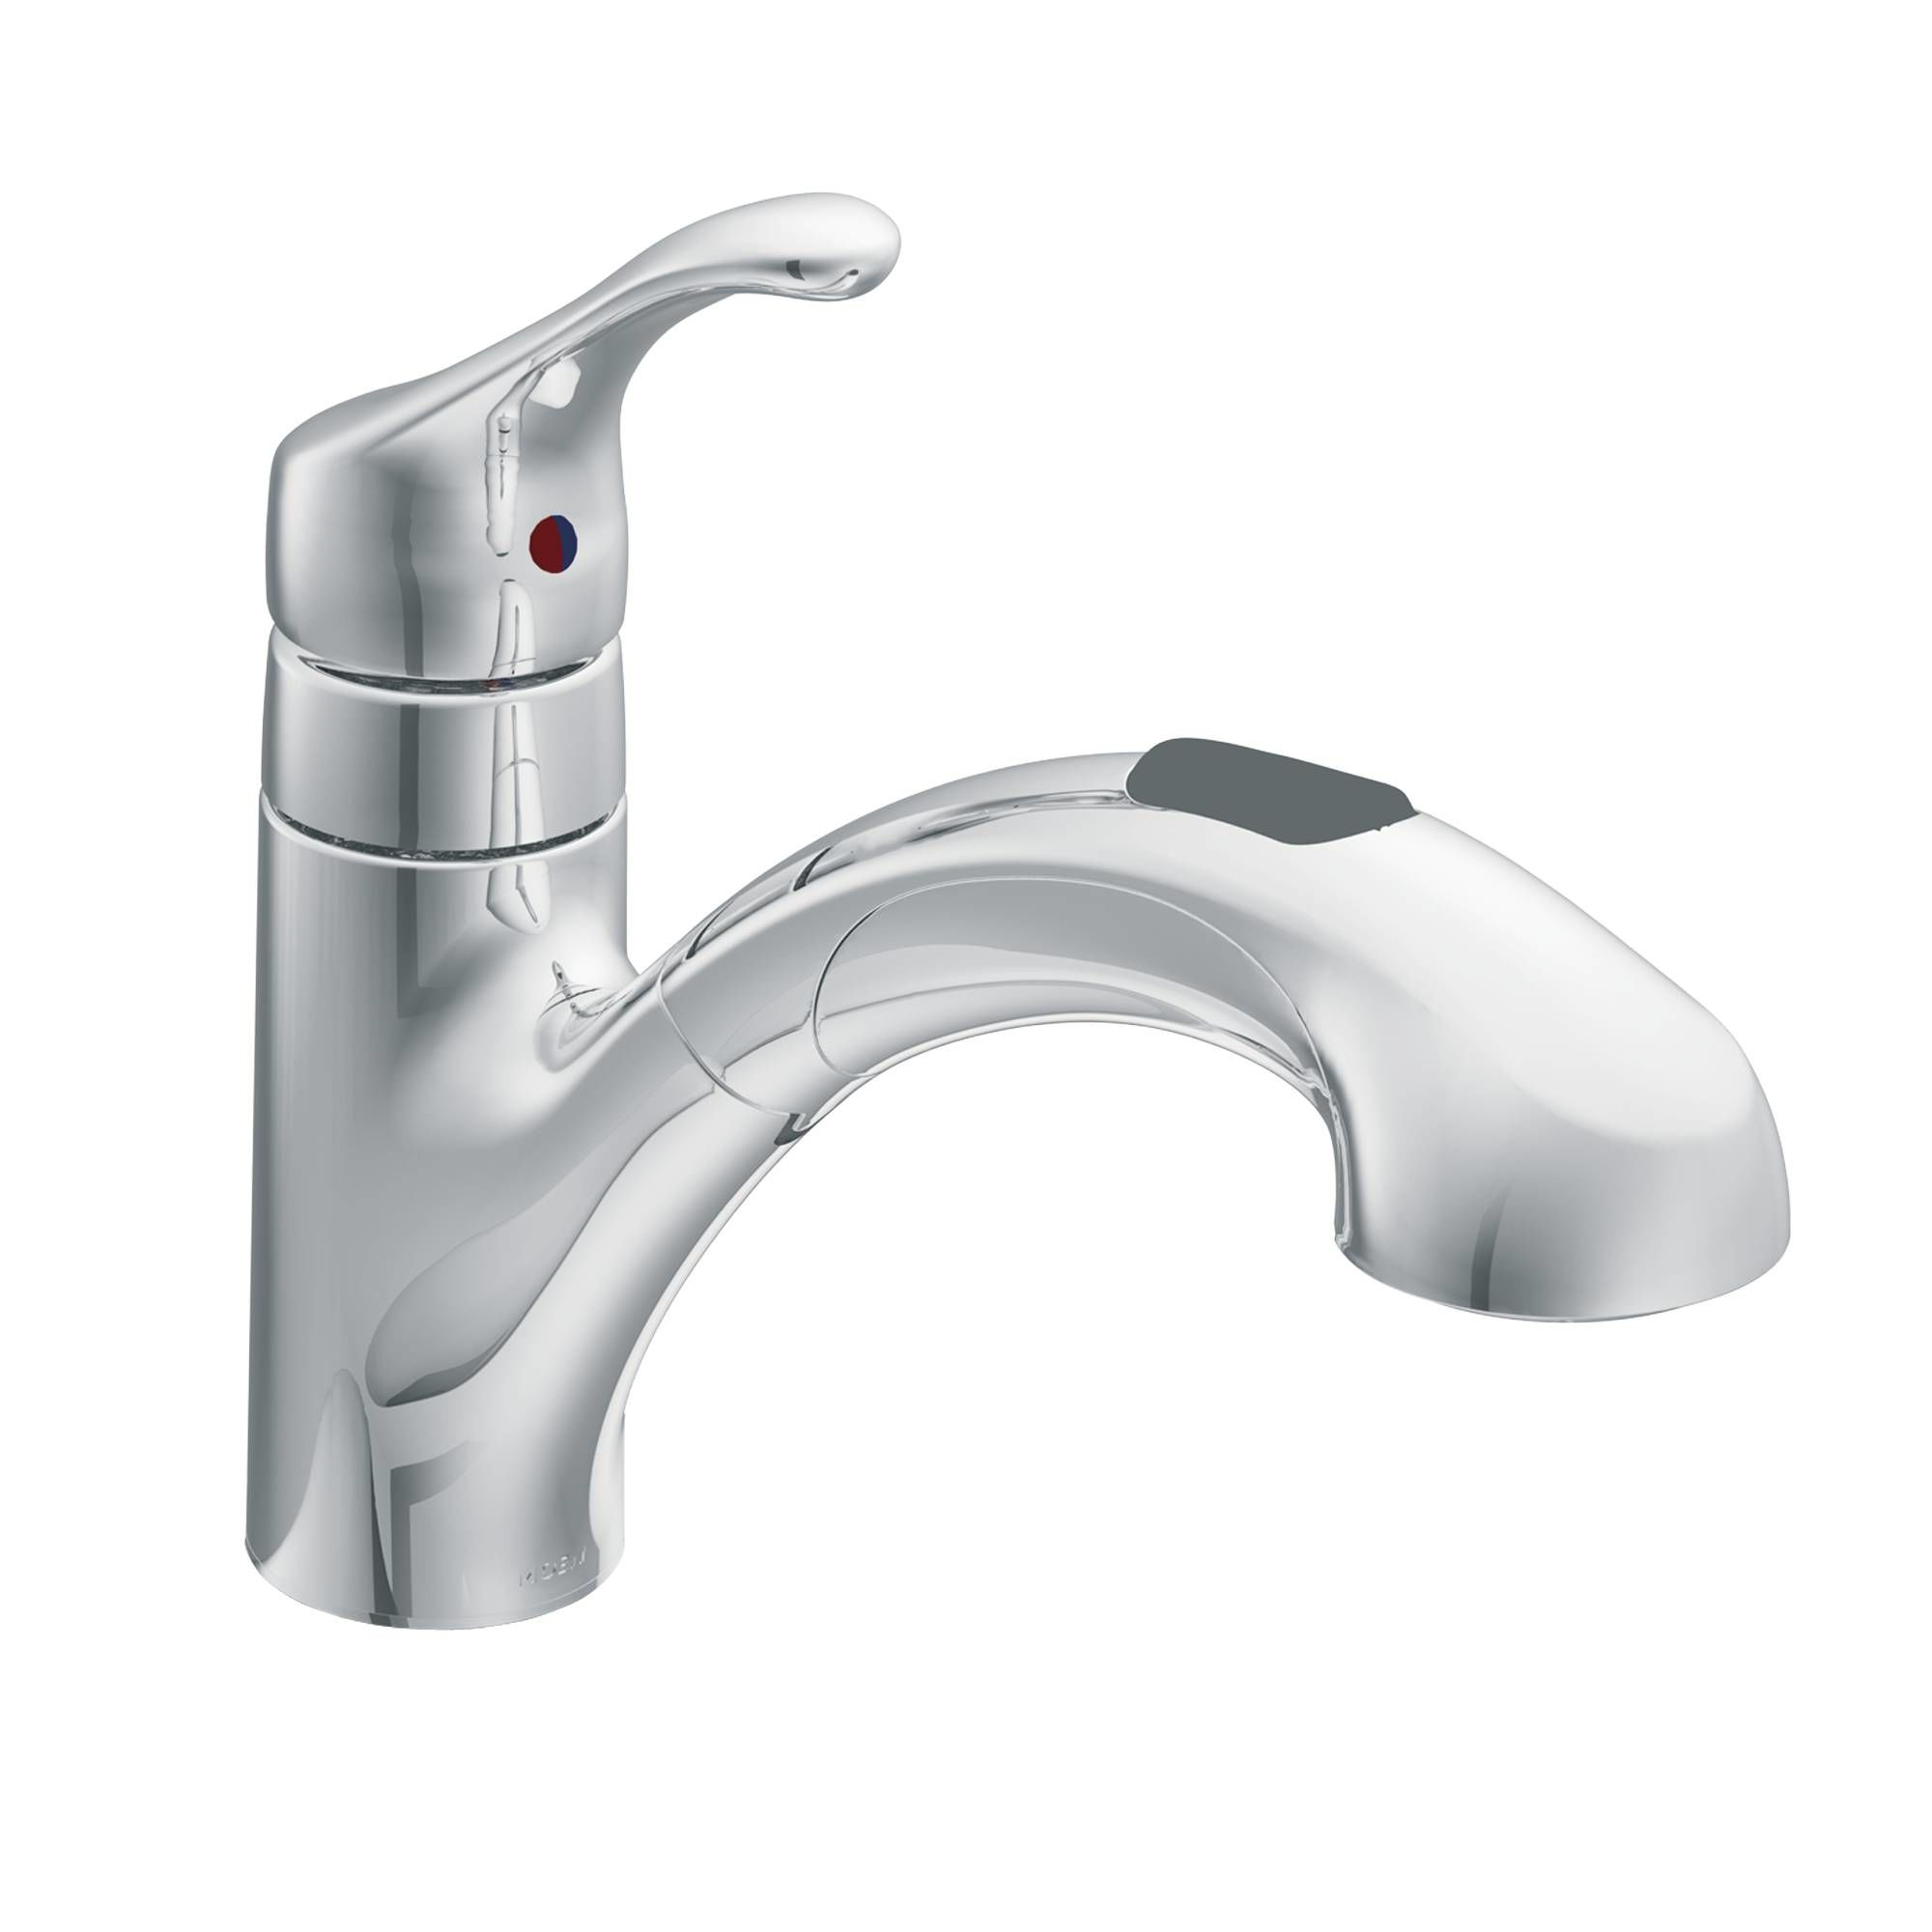 kerala banbury faucets faucet modular kitchen moen brown concept and